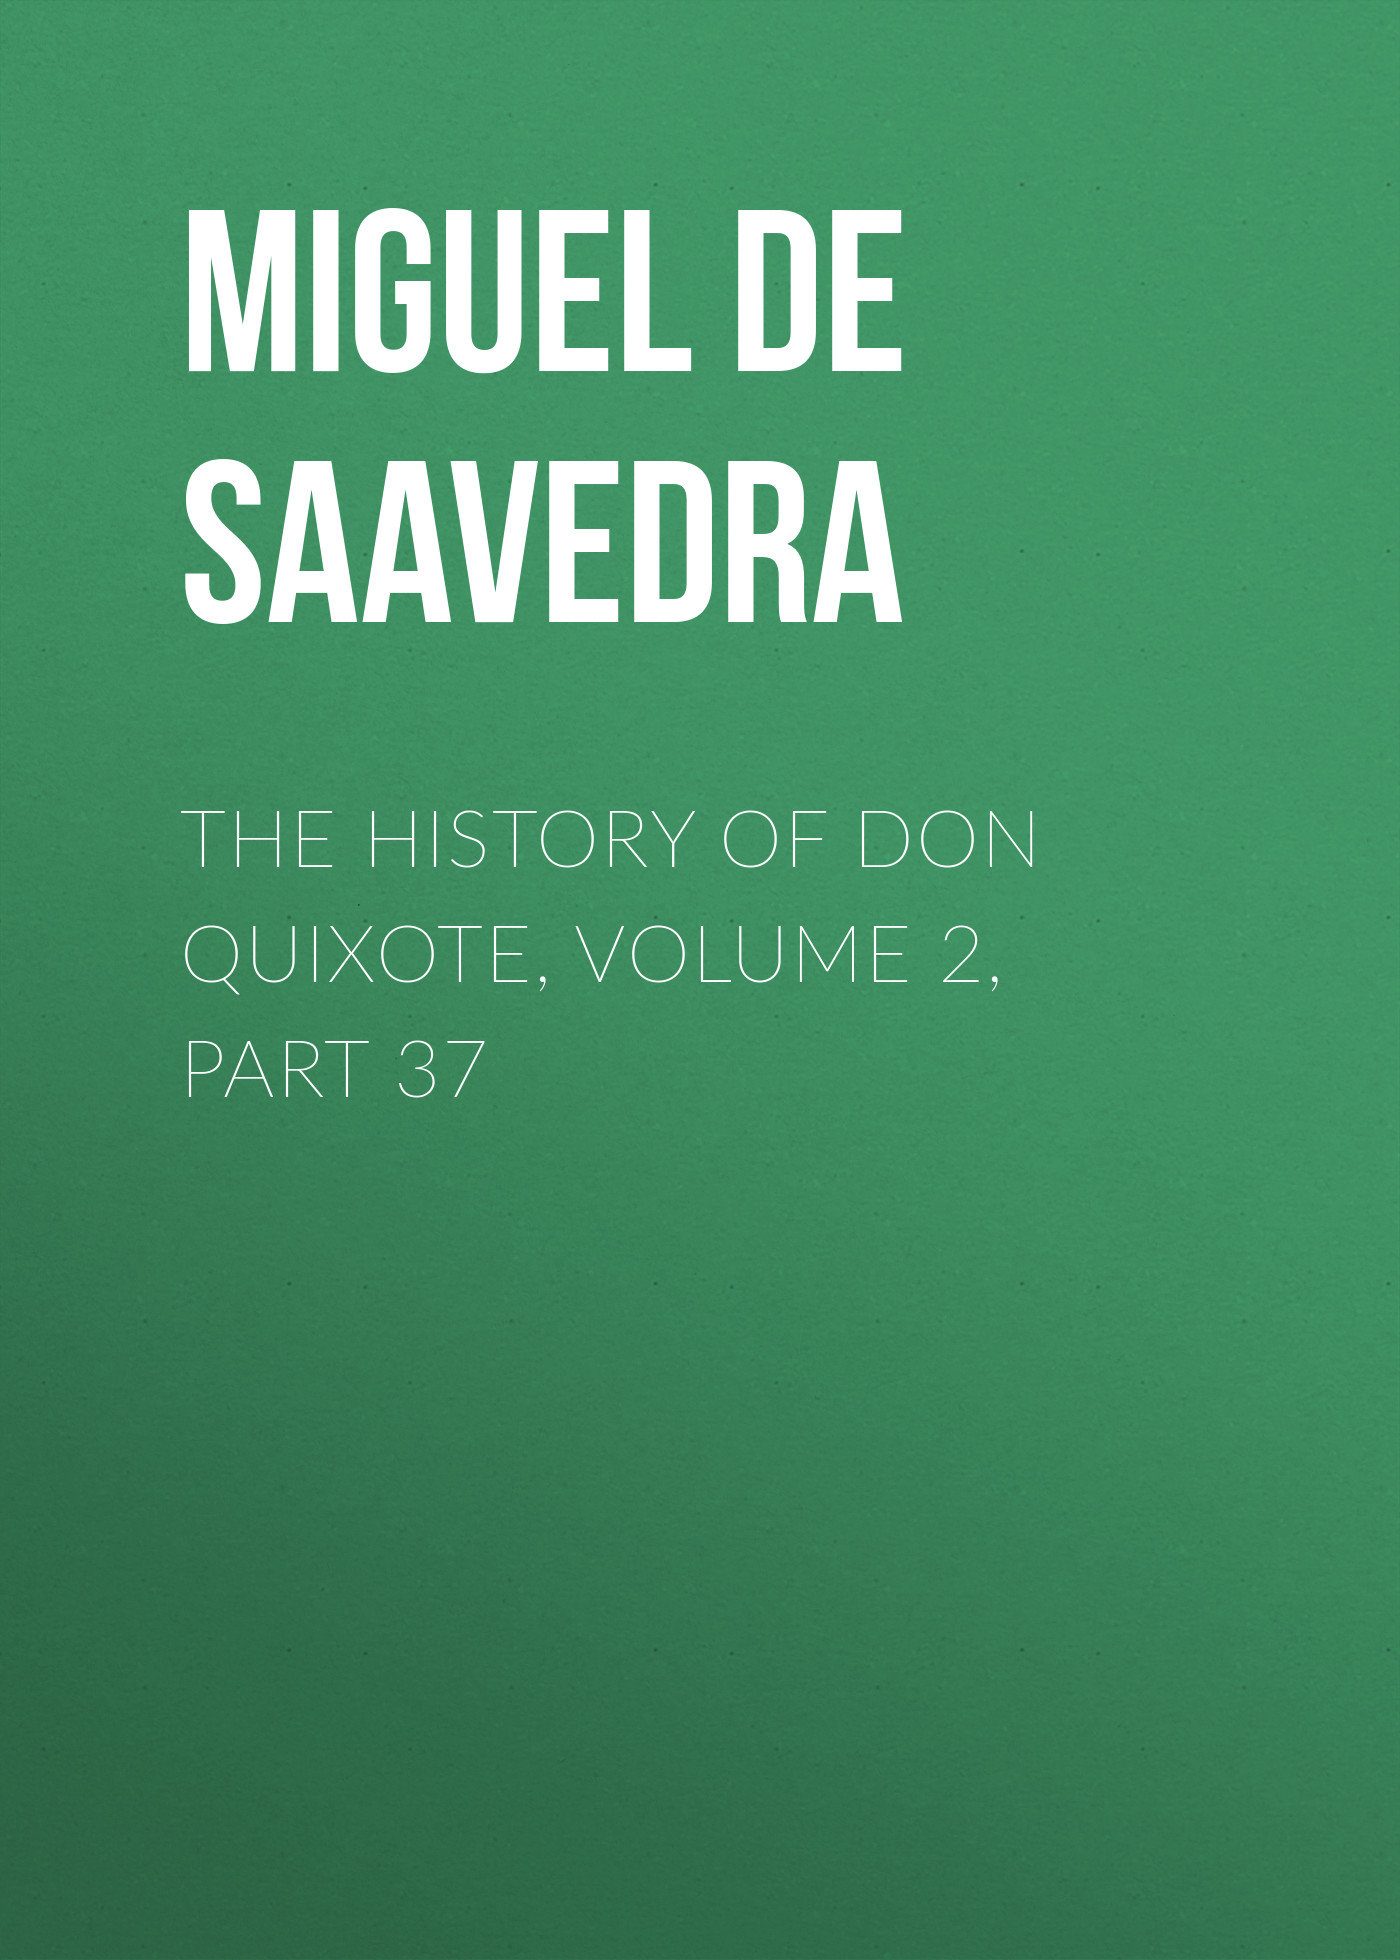 the history of don quixote volume 2 part 37